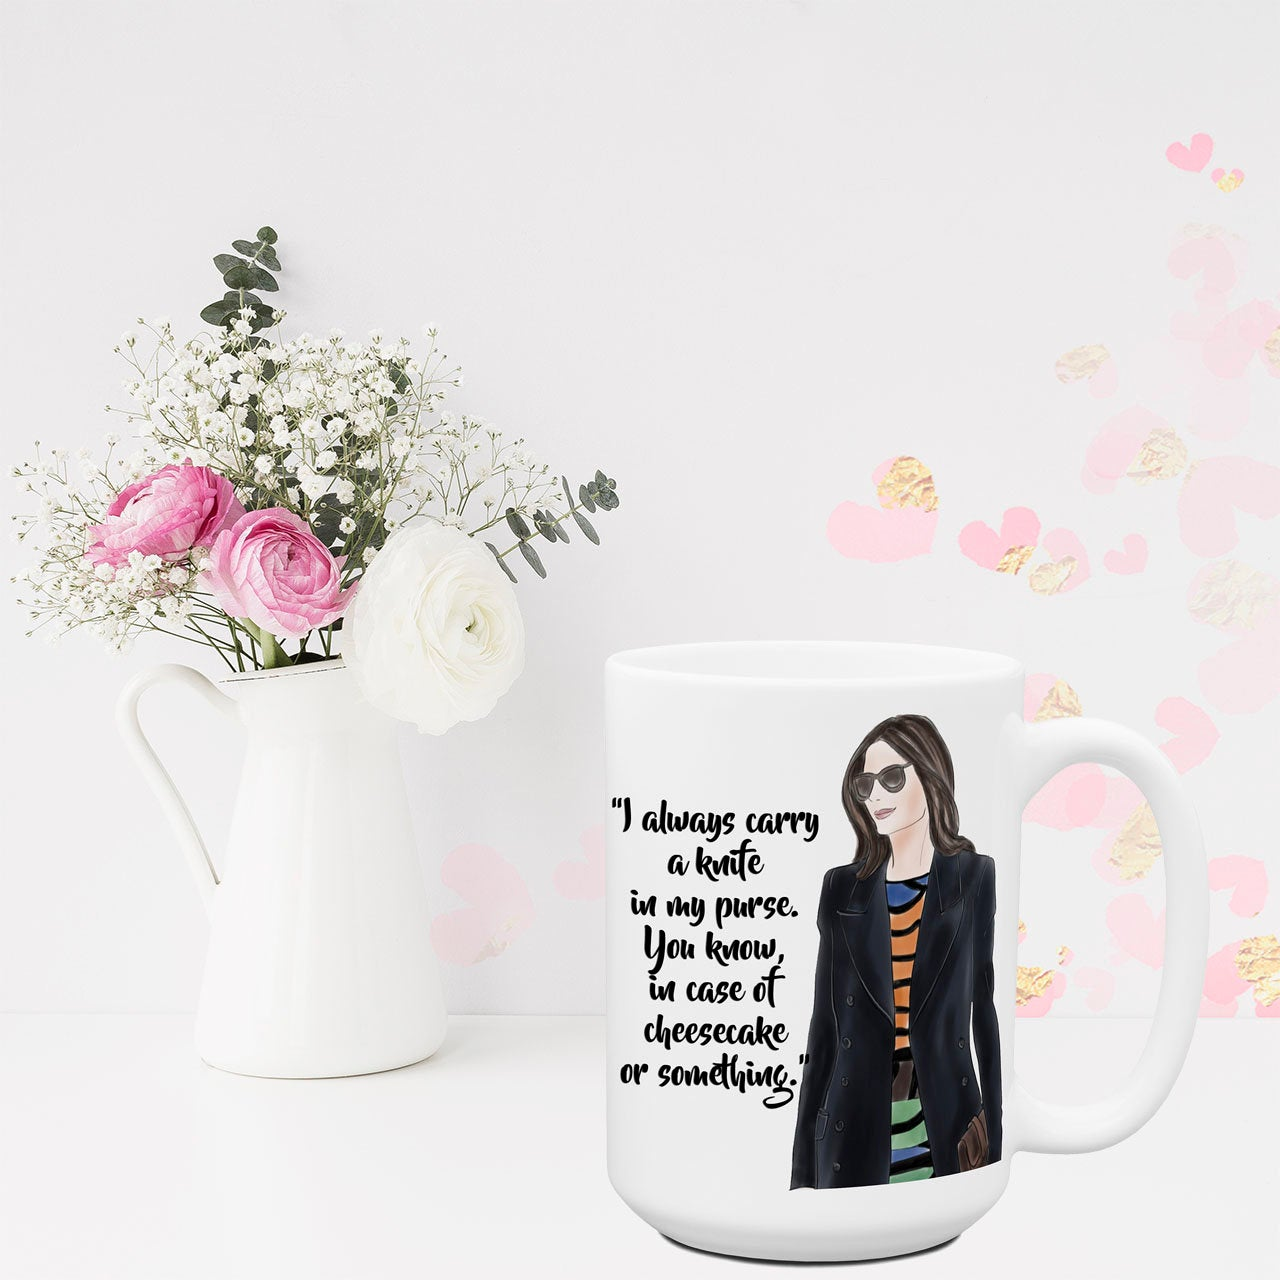 I Always Carry A Knife Funny Coffee Mugs for Women Sassy Attitude Coworker Work Friend Gift for Her